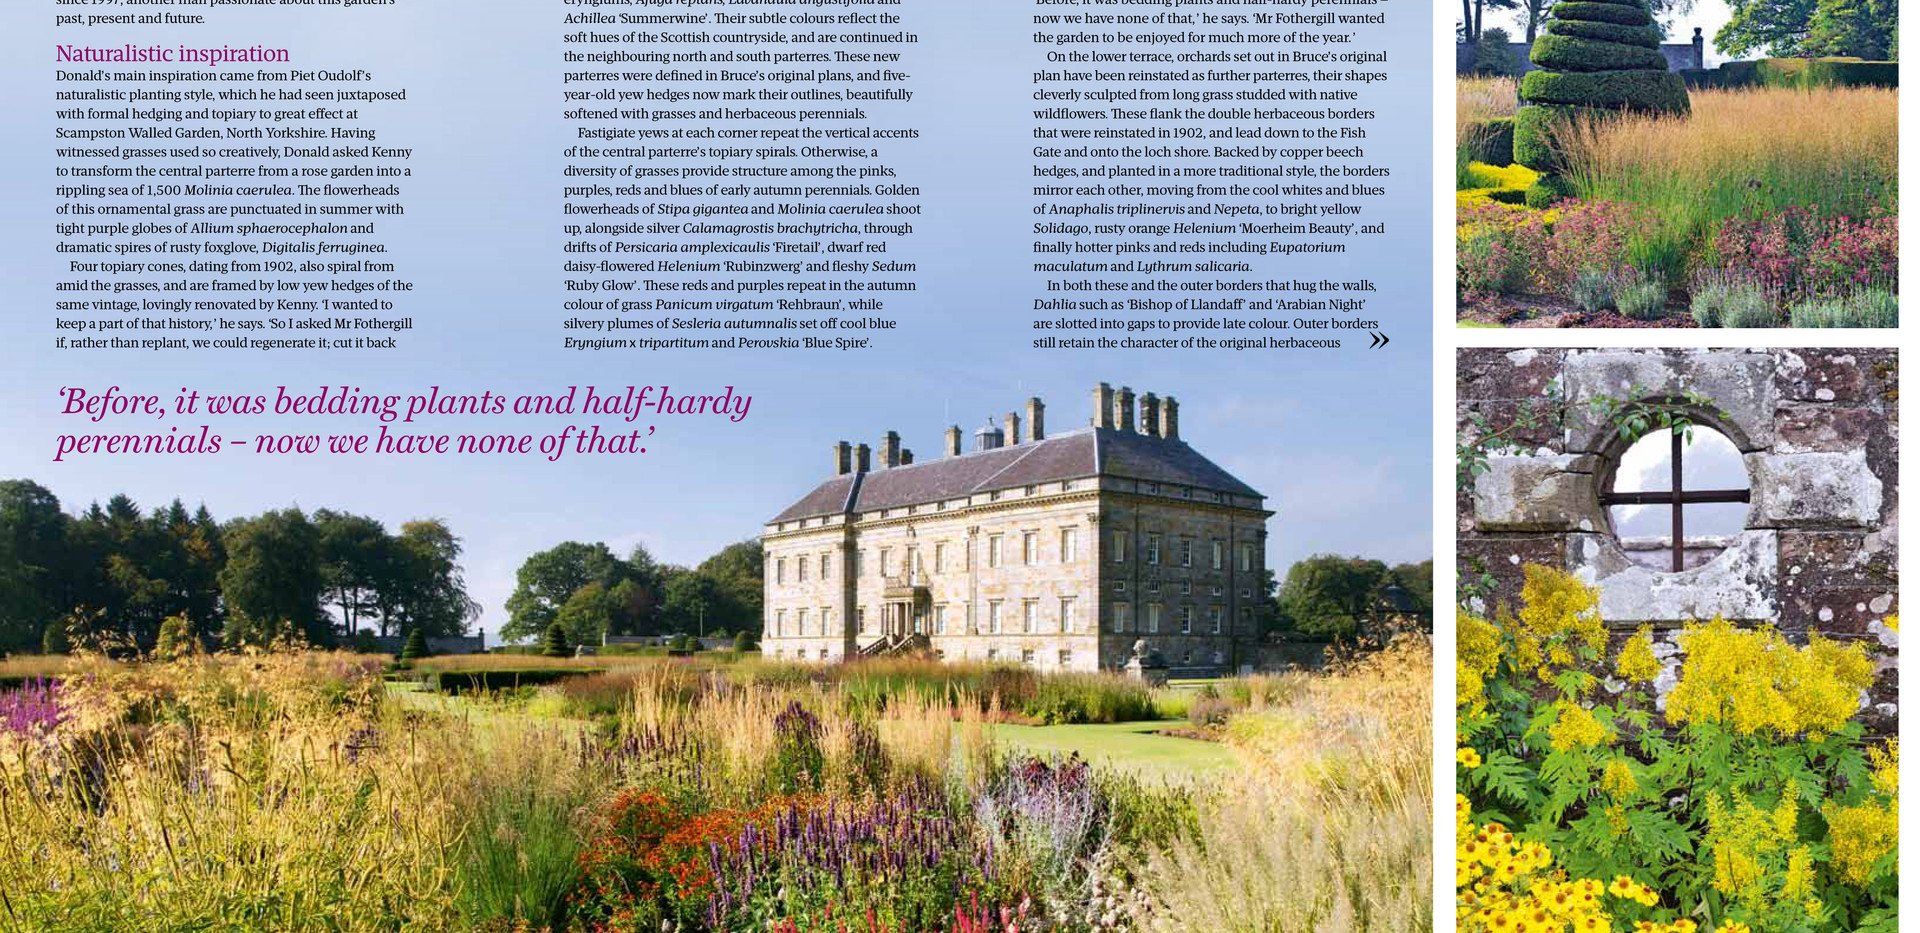 Kinross House Gardens, designed by Alistair Baldwin, The Garden, RHS Magazine September 2016, Page 2